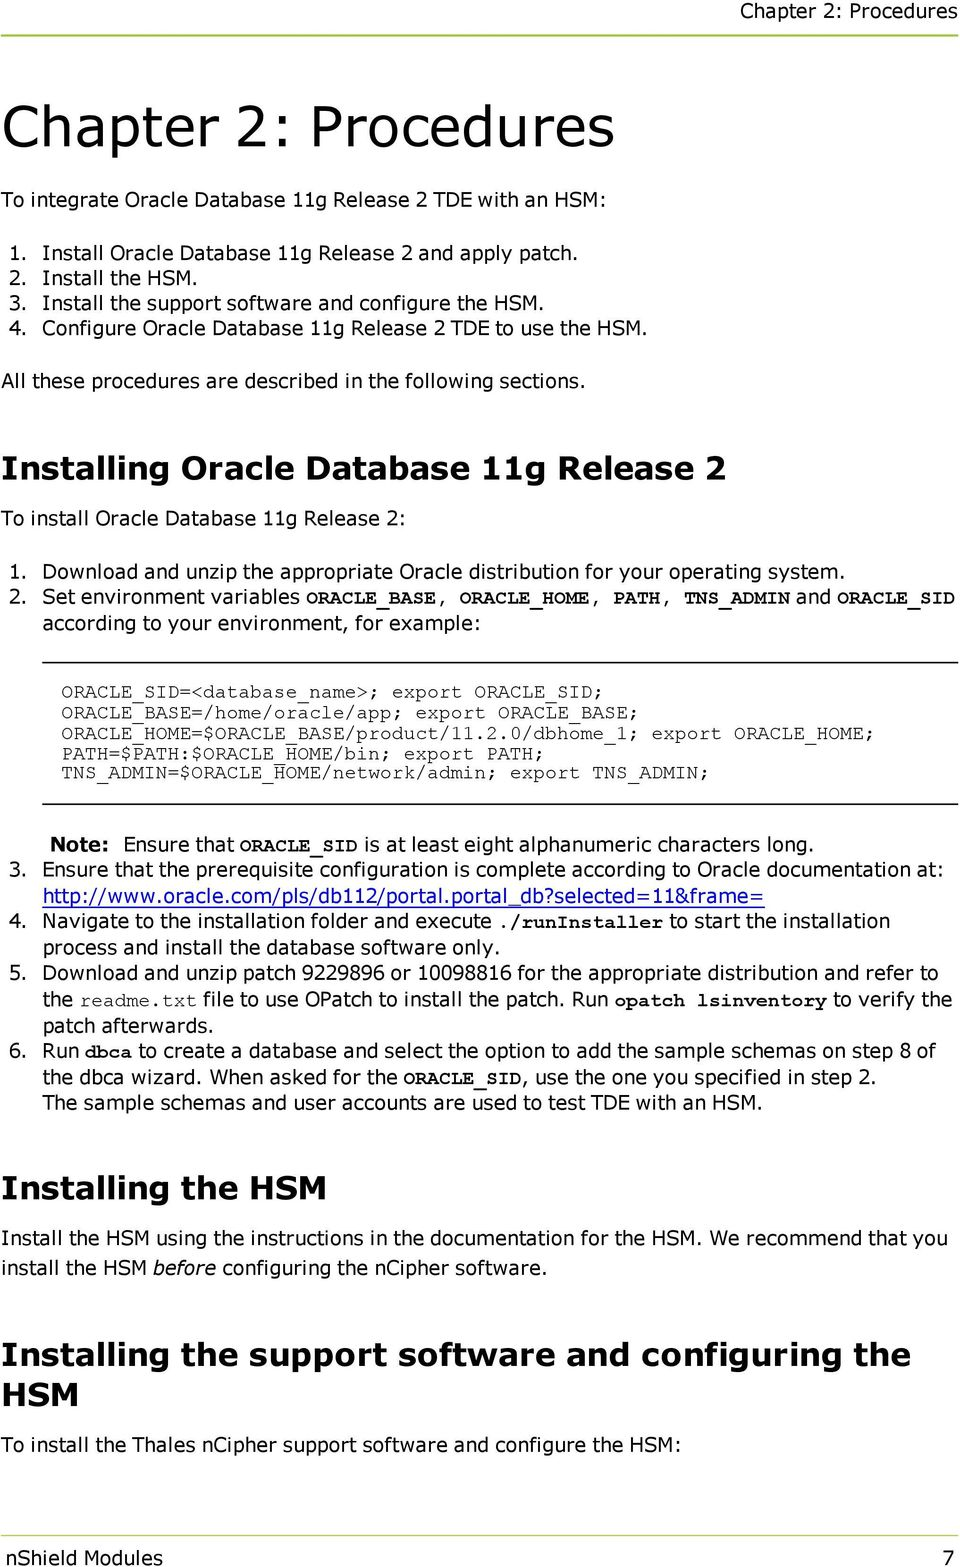 nshield Modules Integration Guide for Oracle Database 11g Release 2